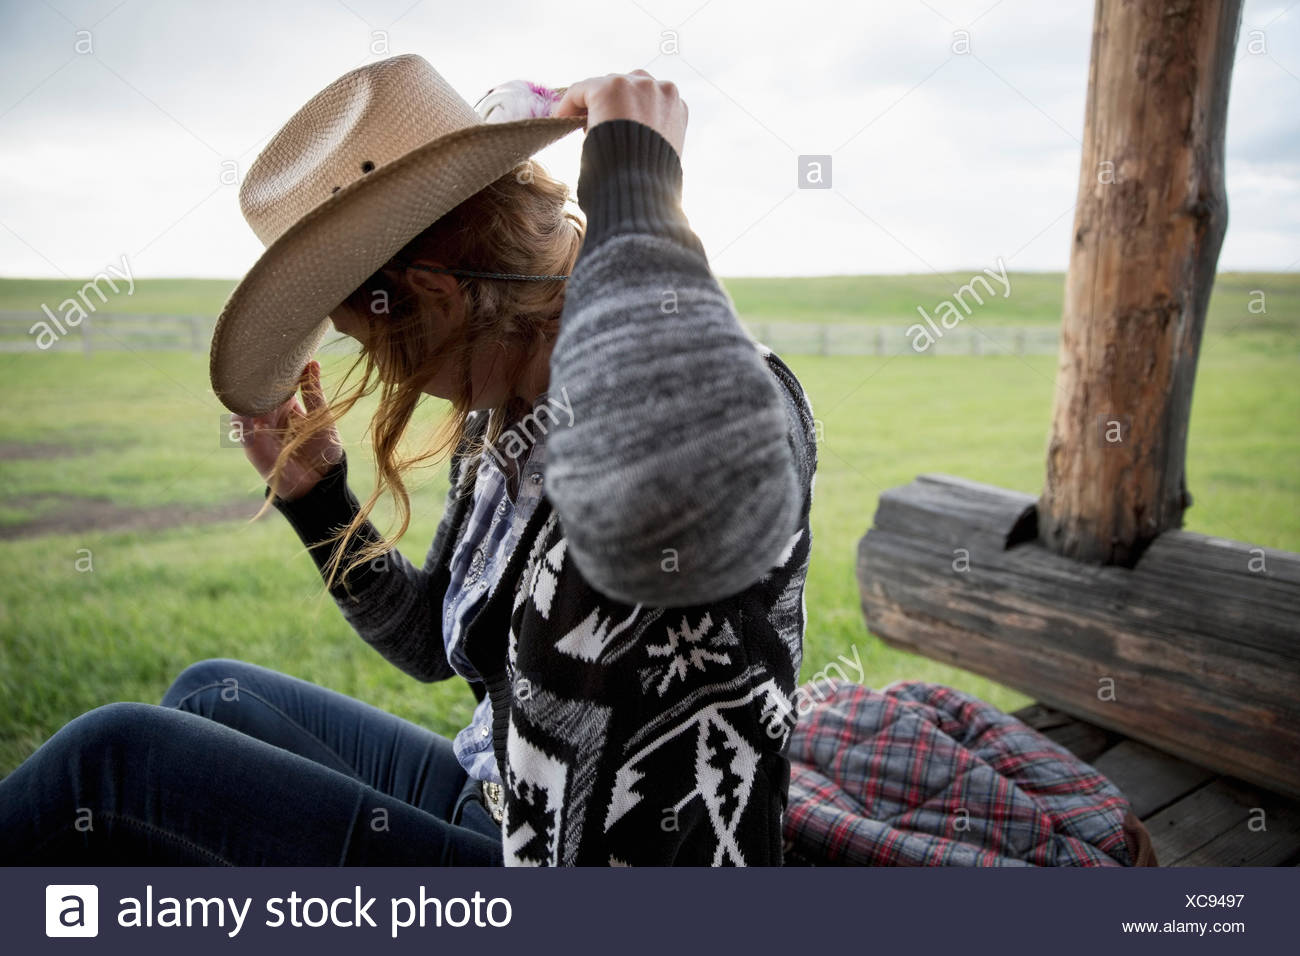 People Porch Stock Photos Amp People Porch Stock Images Alamy